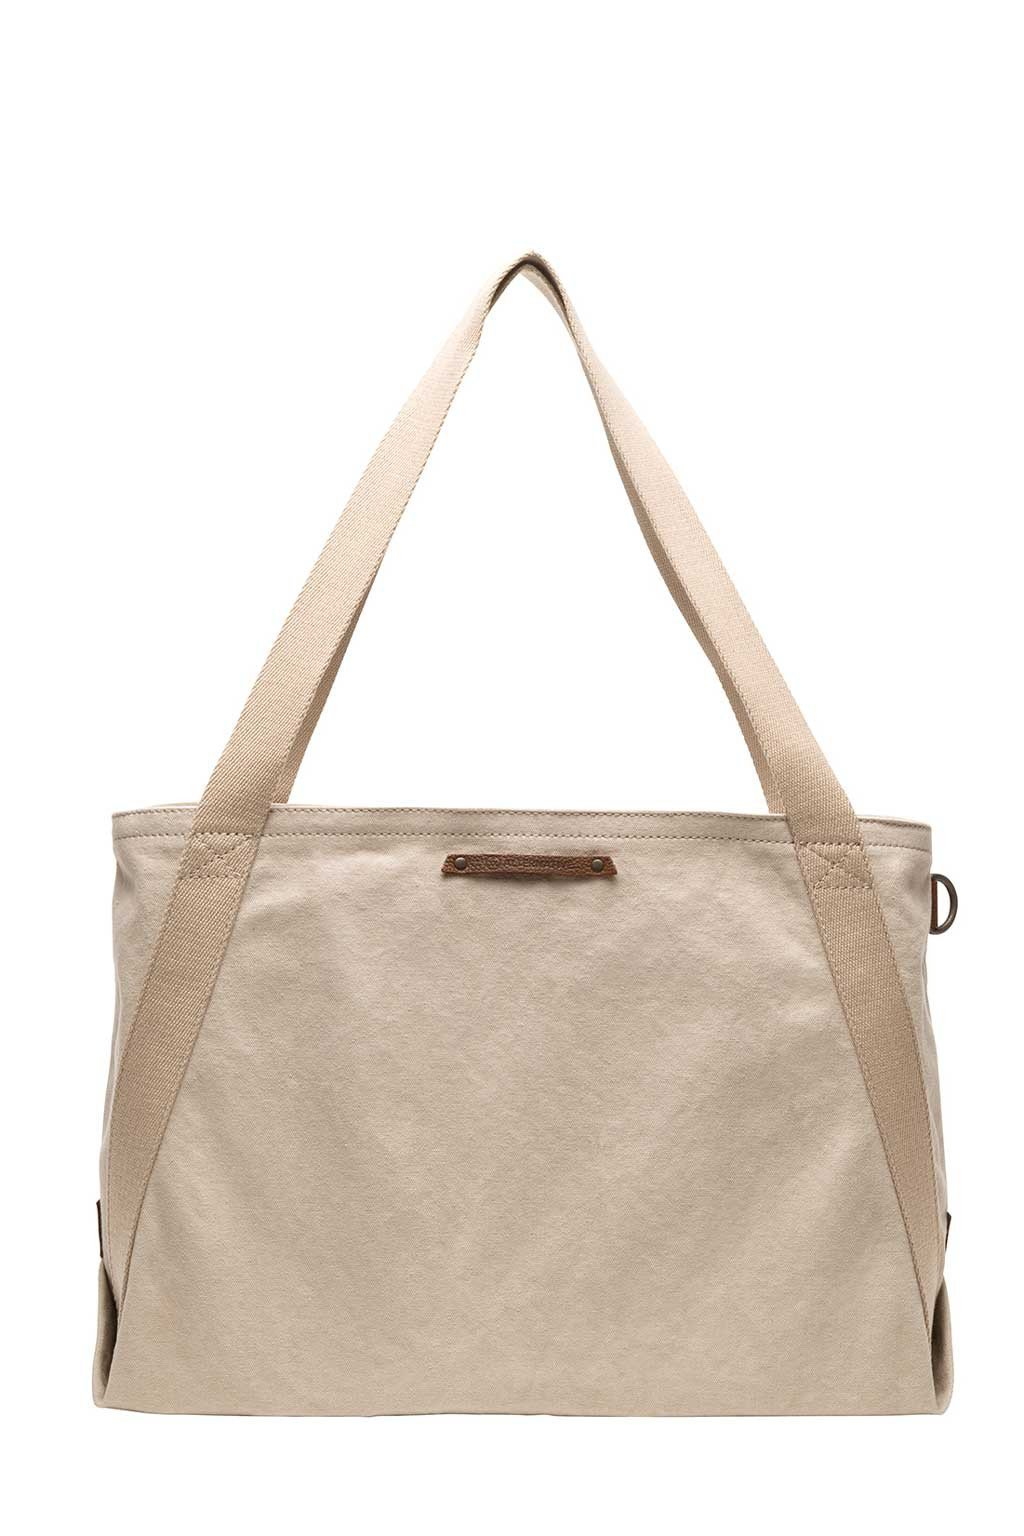 Cotton Boat Tote In Sand - Two Penny Blue